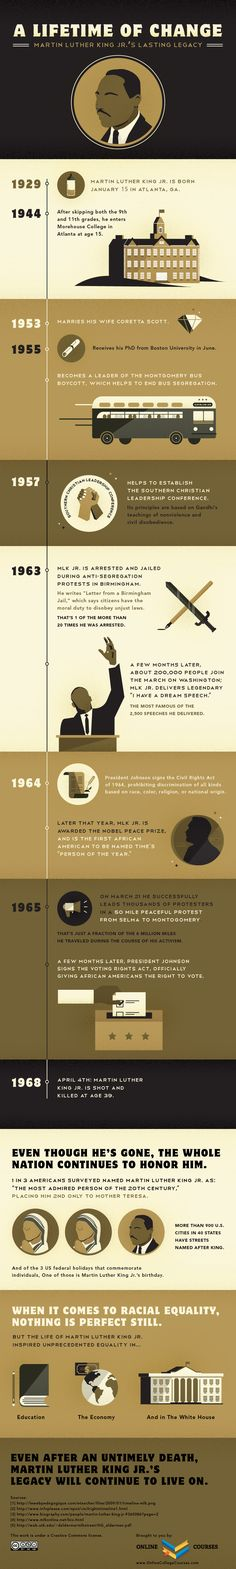 Martin Luther King Jr. - A Lifetime of Change infographic